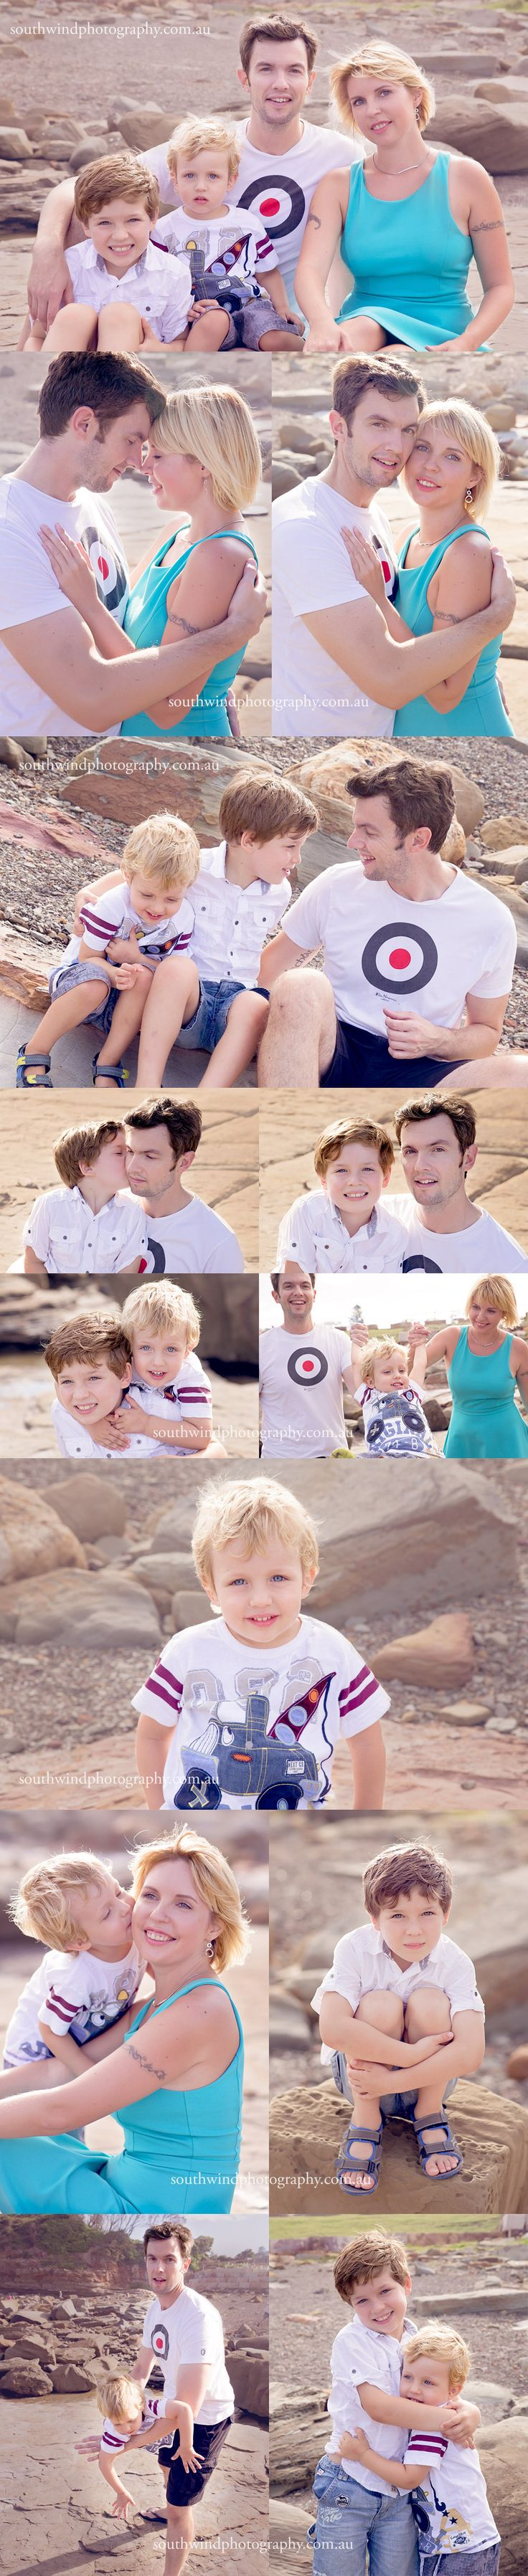 A summer fun portrait session for family R | Terrigal Beach professional photographer